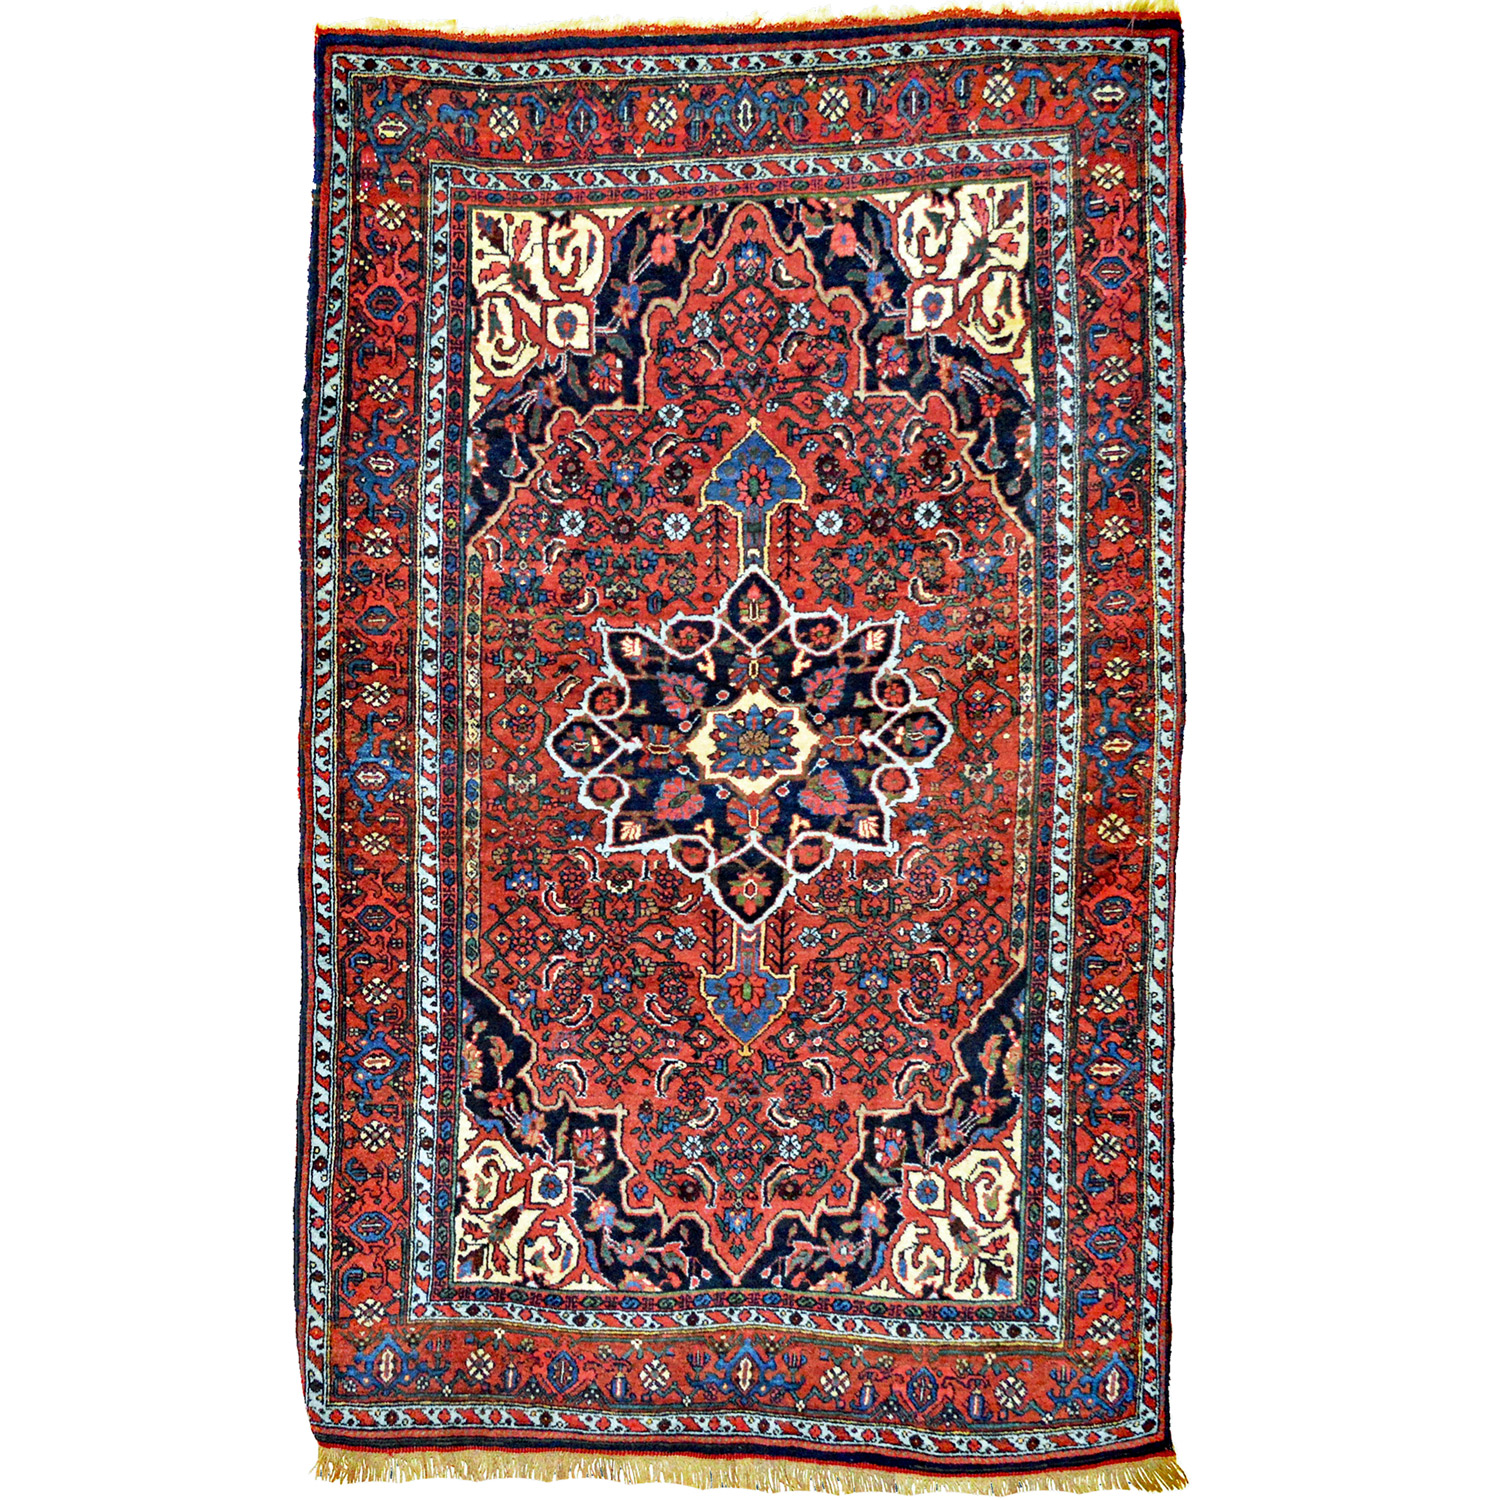 4.1 x 6.8 Antique Bidjar rug with Herati design, northwest Persia, circa 1910